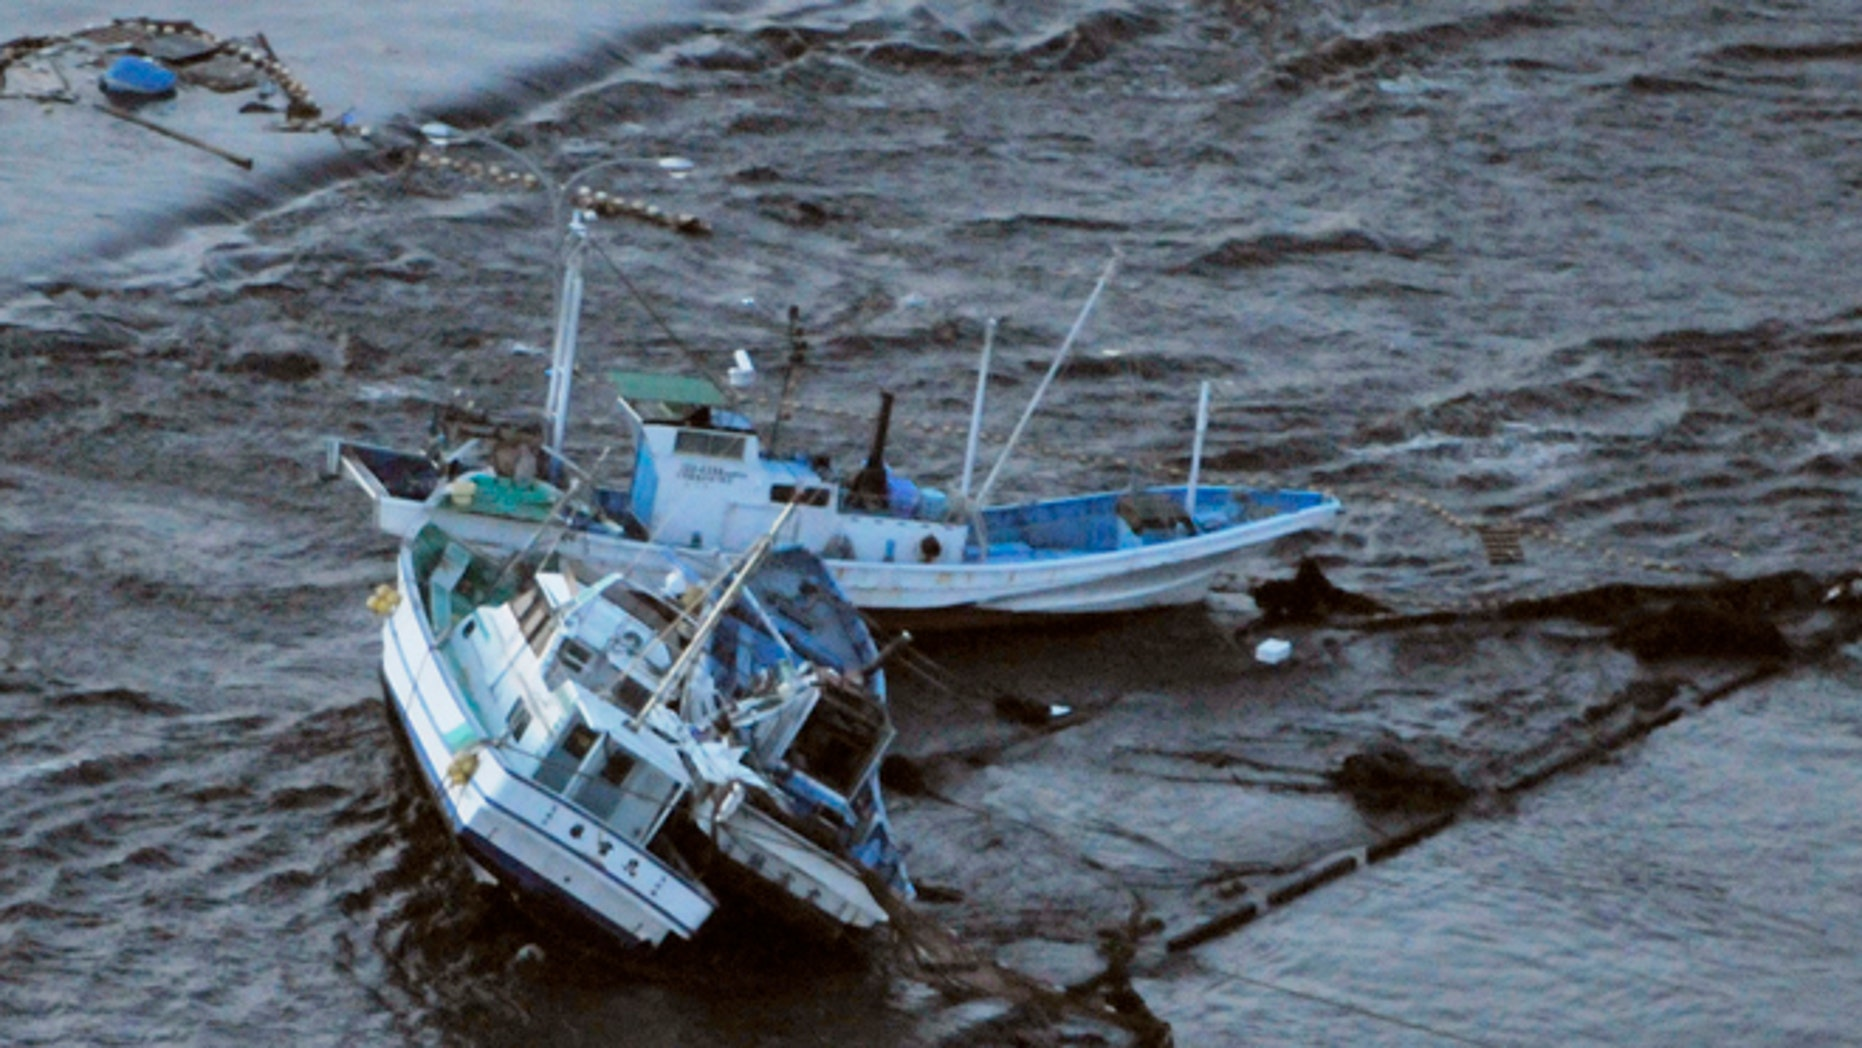 March 11: Fishing boats get stranded on shore at Oarai town, Ibaraki prefecture (state), Japan, after a ferocious tsunami spawned by one of the largest earthquakes ever recorded slammed Japan's eastern coasts.